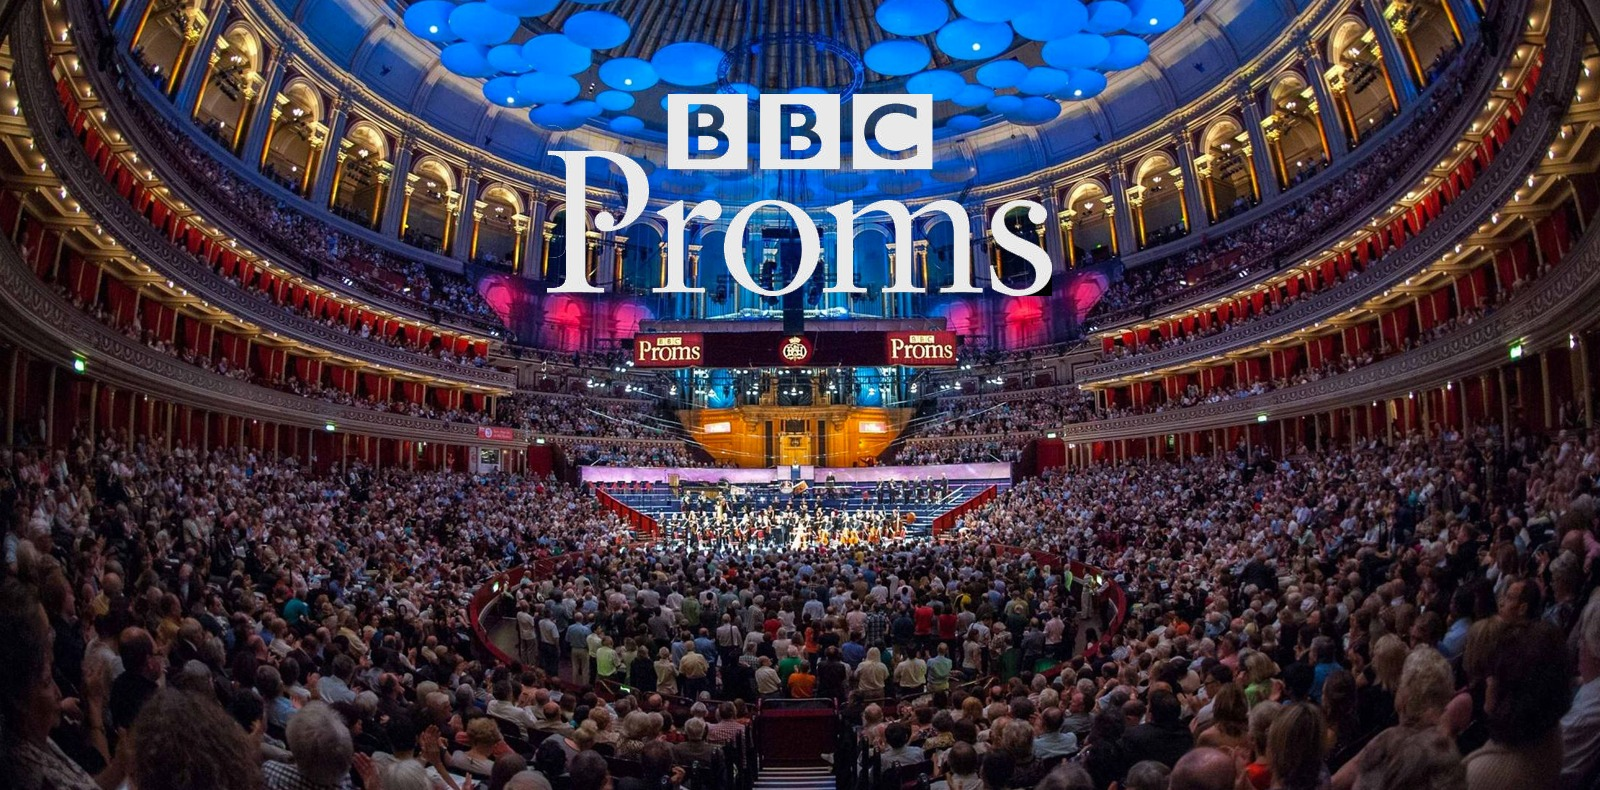 kiss me, kate at the bbc proms